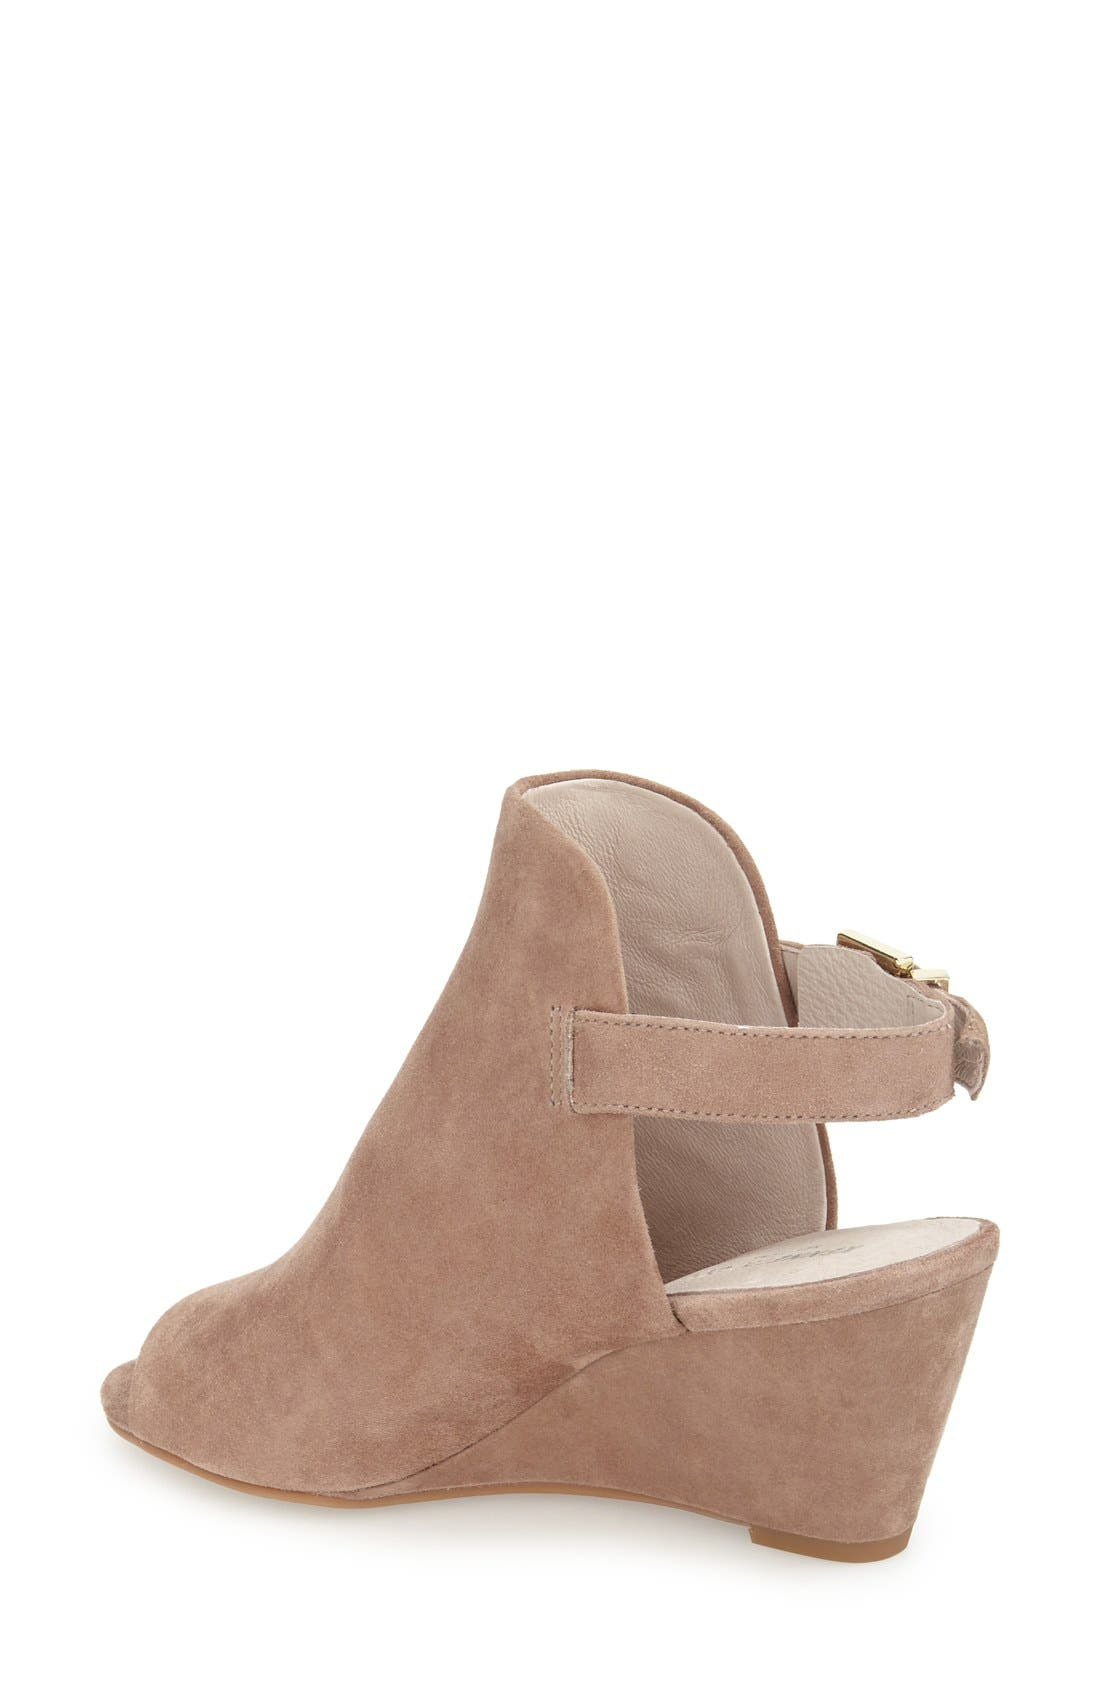 Alternate Image 2  - Kenneth Cole New York 'Dana' Wedge Sandal (Women)